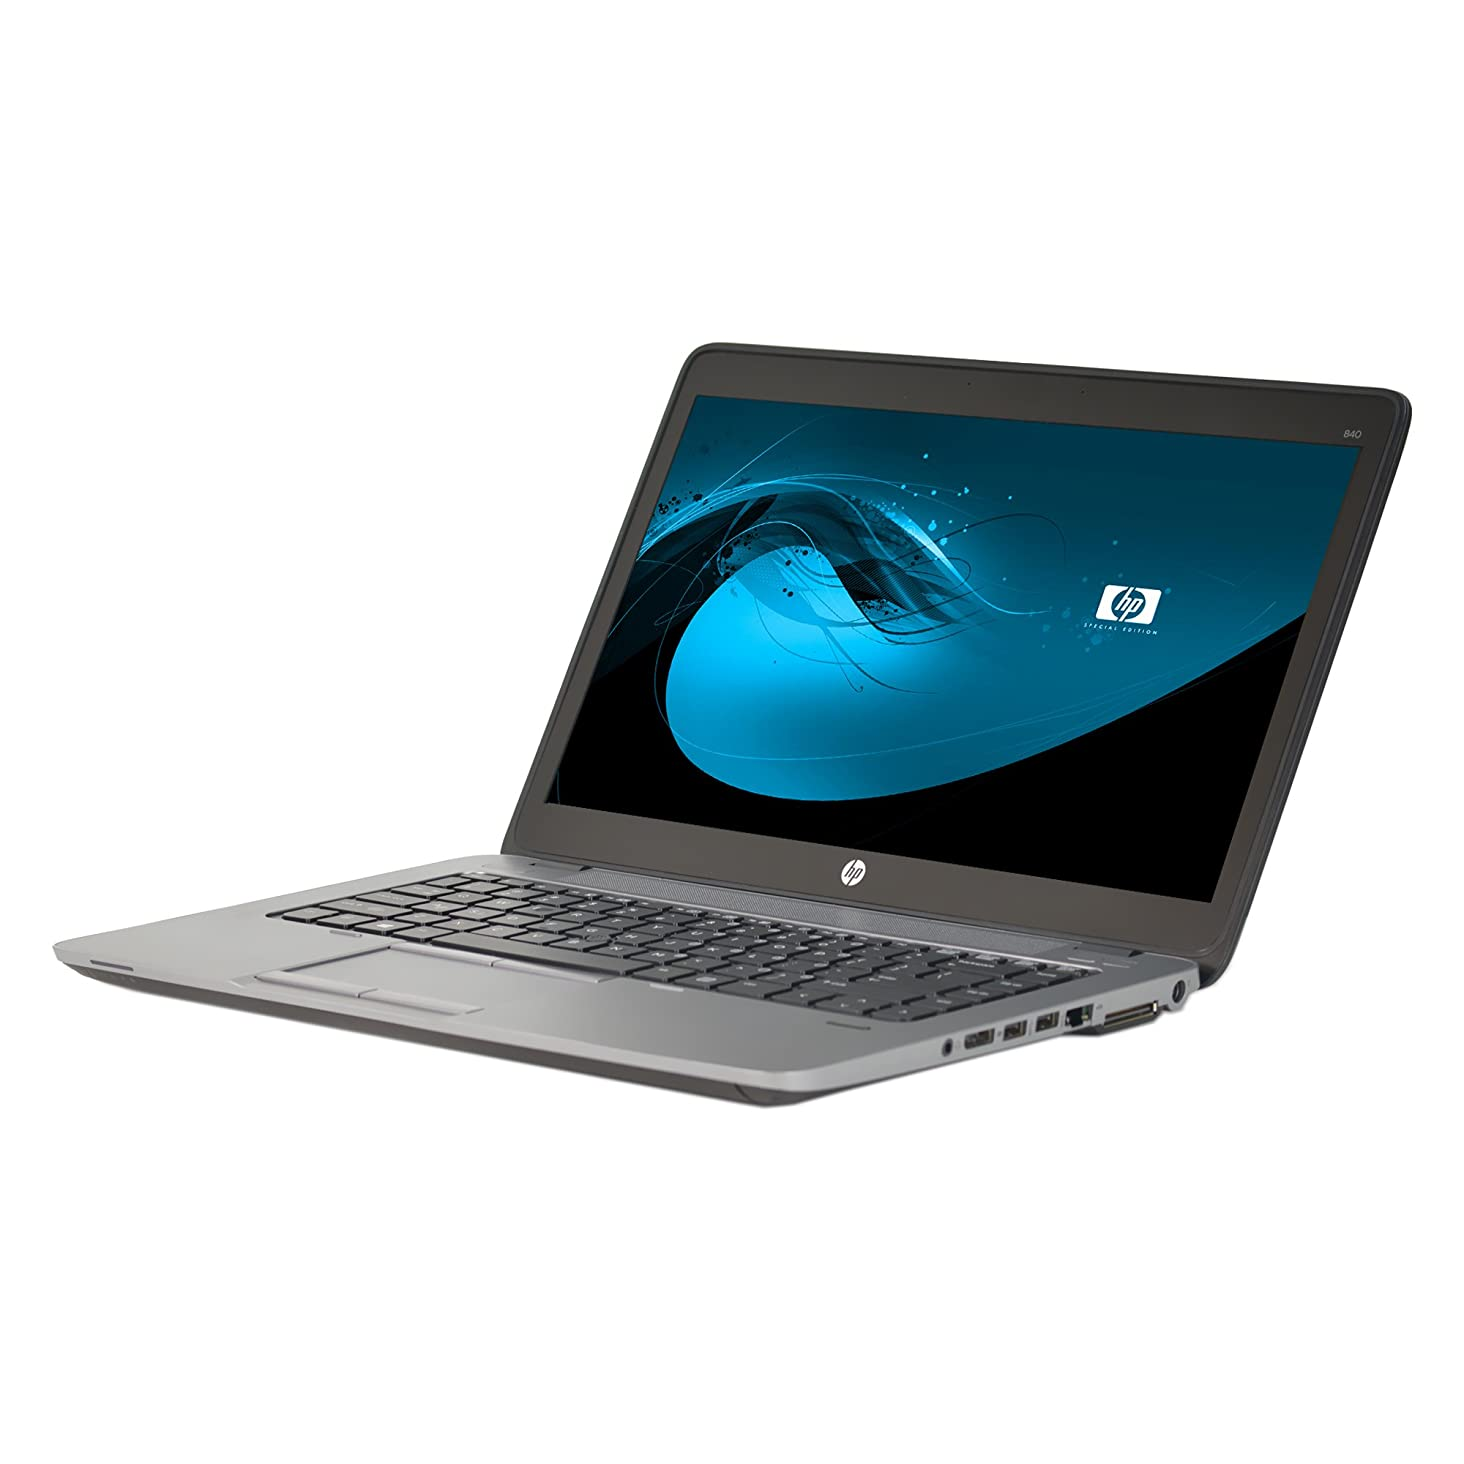 HP Elitebook 840 G1 14in Laptop, Core i5-4200U 1.6GHz, 8GB RAM, 128GB Solid State Drive, Win10P64, NO_CAM, NO_Touch (Renewed)